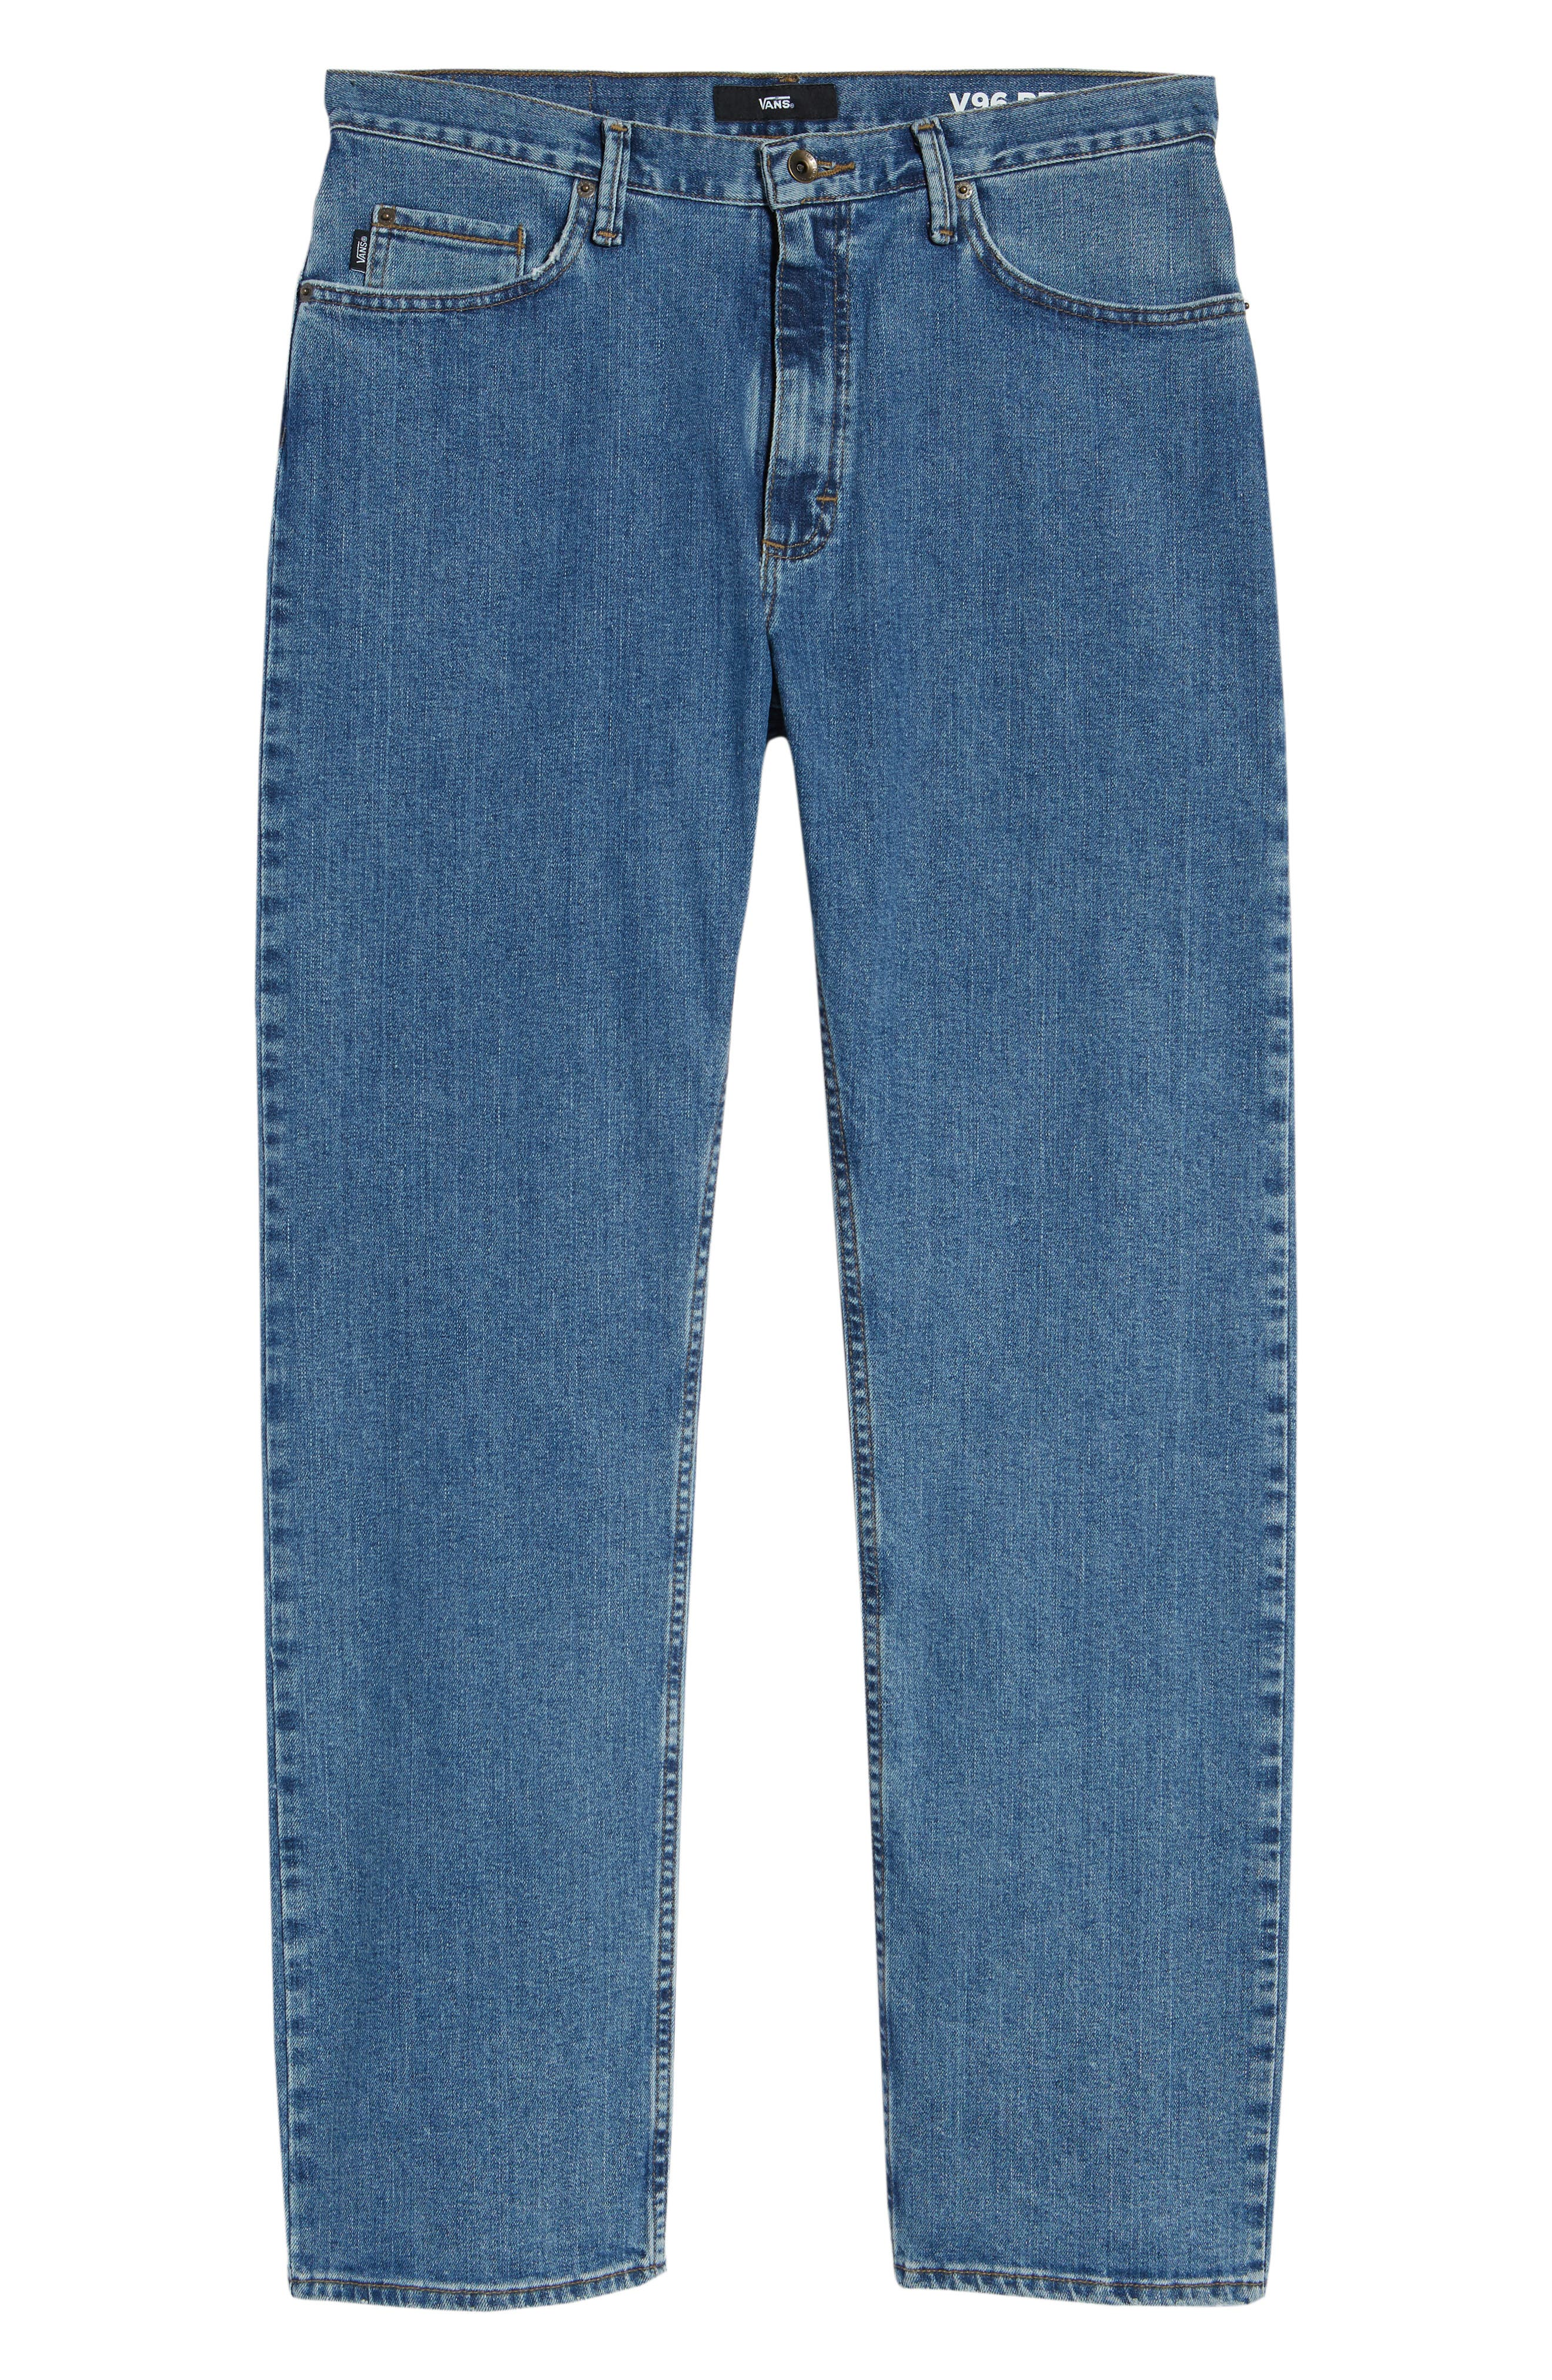 V96 Relaxed Fit Jeans,                             Alternate thumbnail 6, color,                             STONE WASH